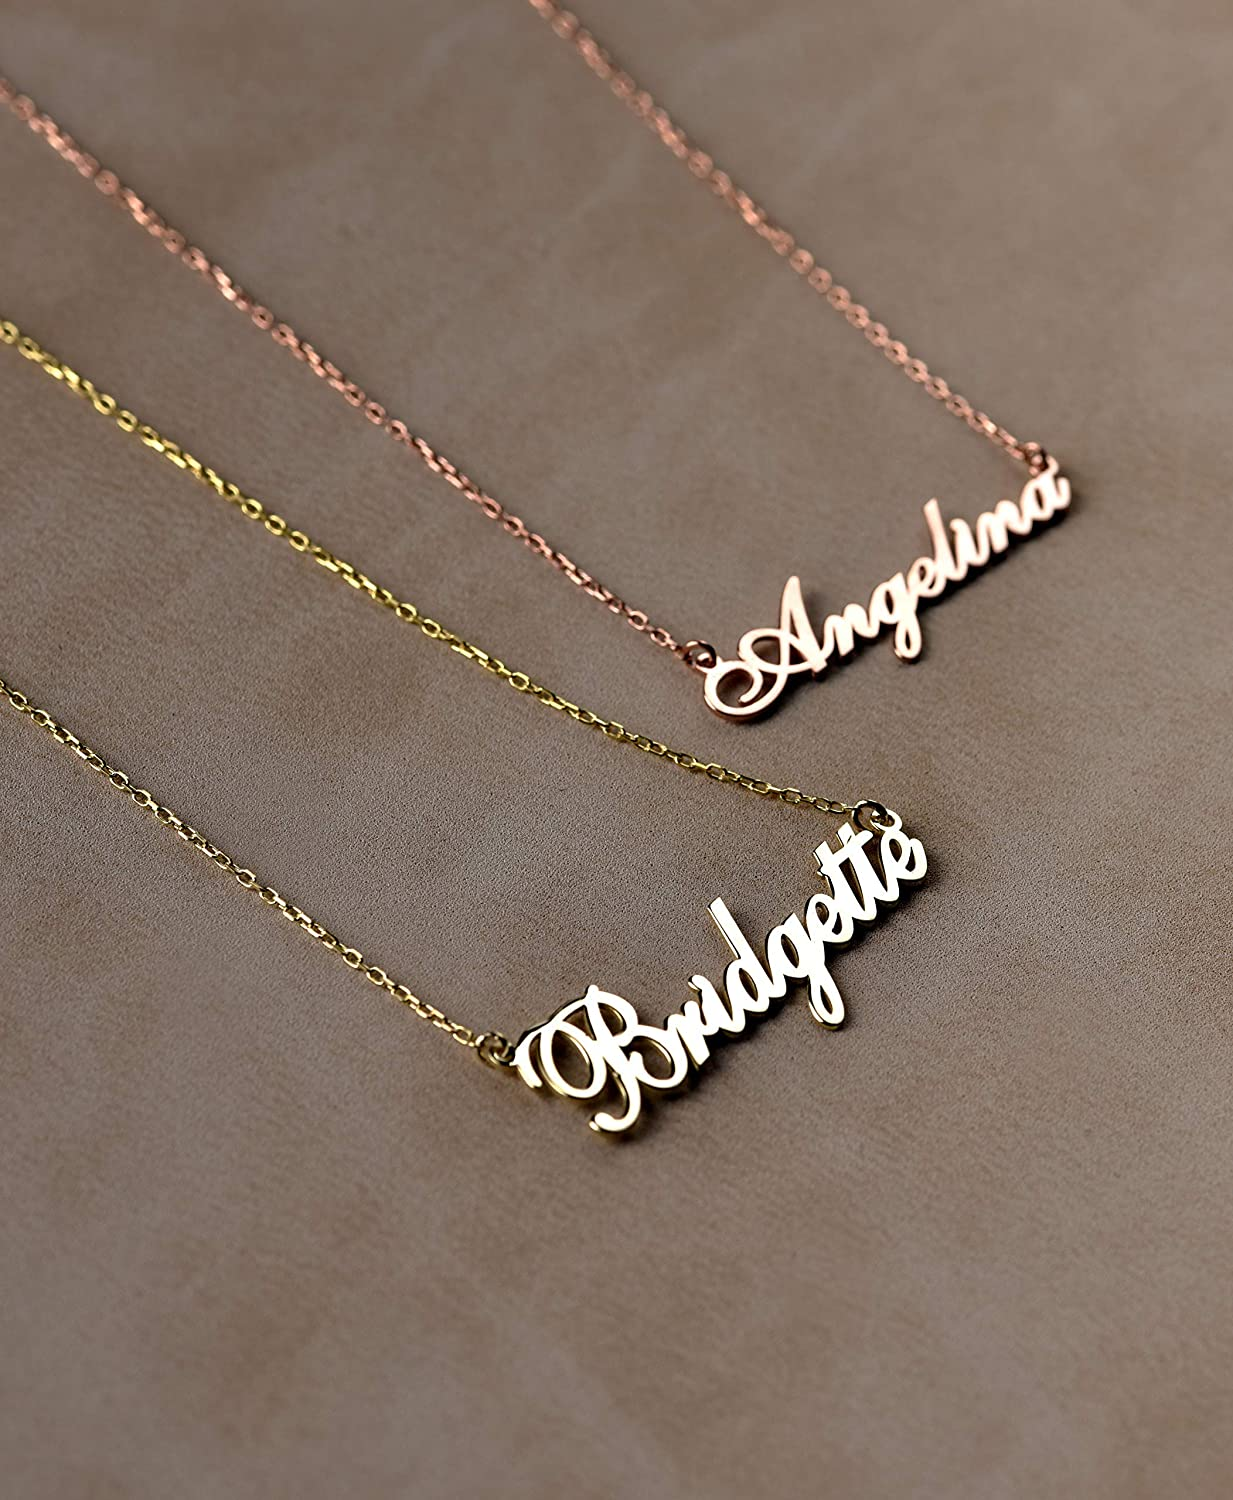 df029f666b427a Amazon.com: 14K Solid Gold Personalized Necklace, Custom Gold Necklace  Gift, Dainty Script Name Necklace, Cursive Name Jewelry, Gold Necklace For  Women: ...